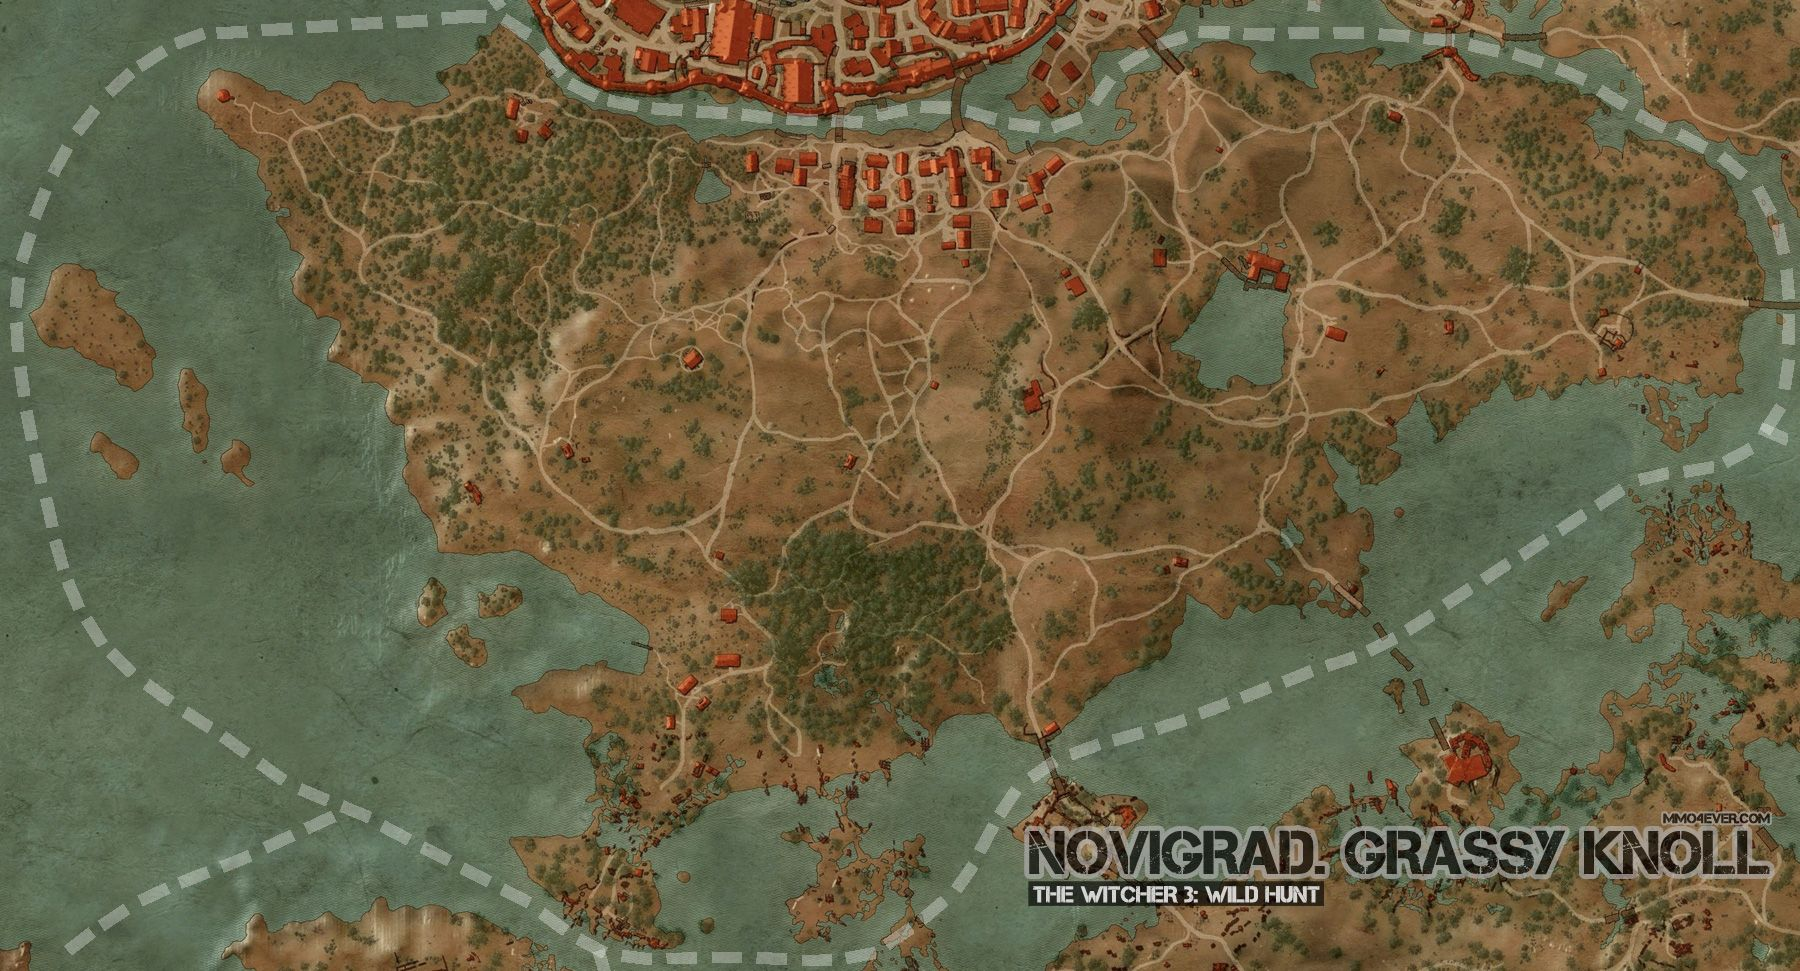 Novigrad, Grassy Knoll Map | The Witcher 3: Wild Hunt Maps & Quests